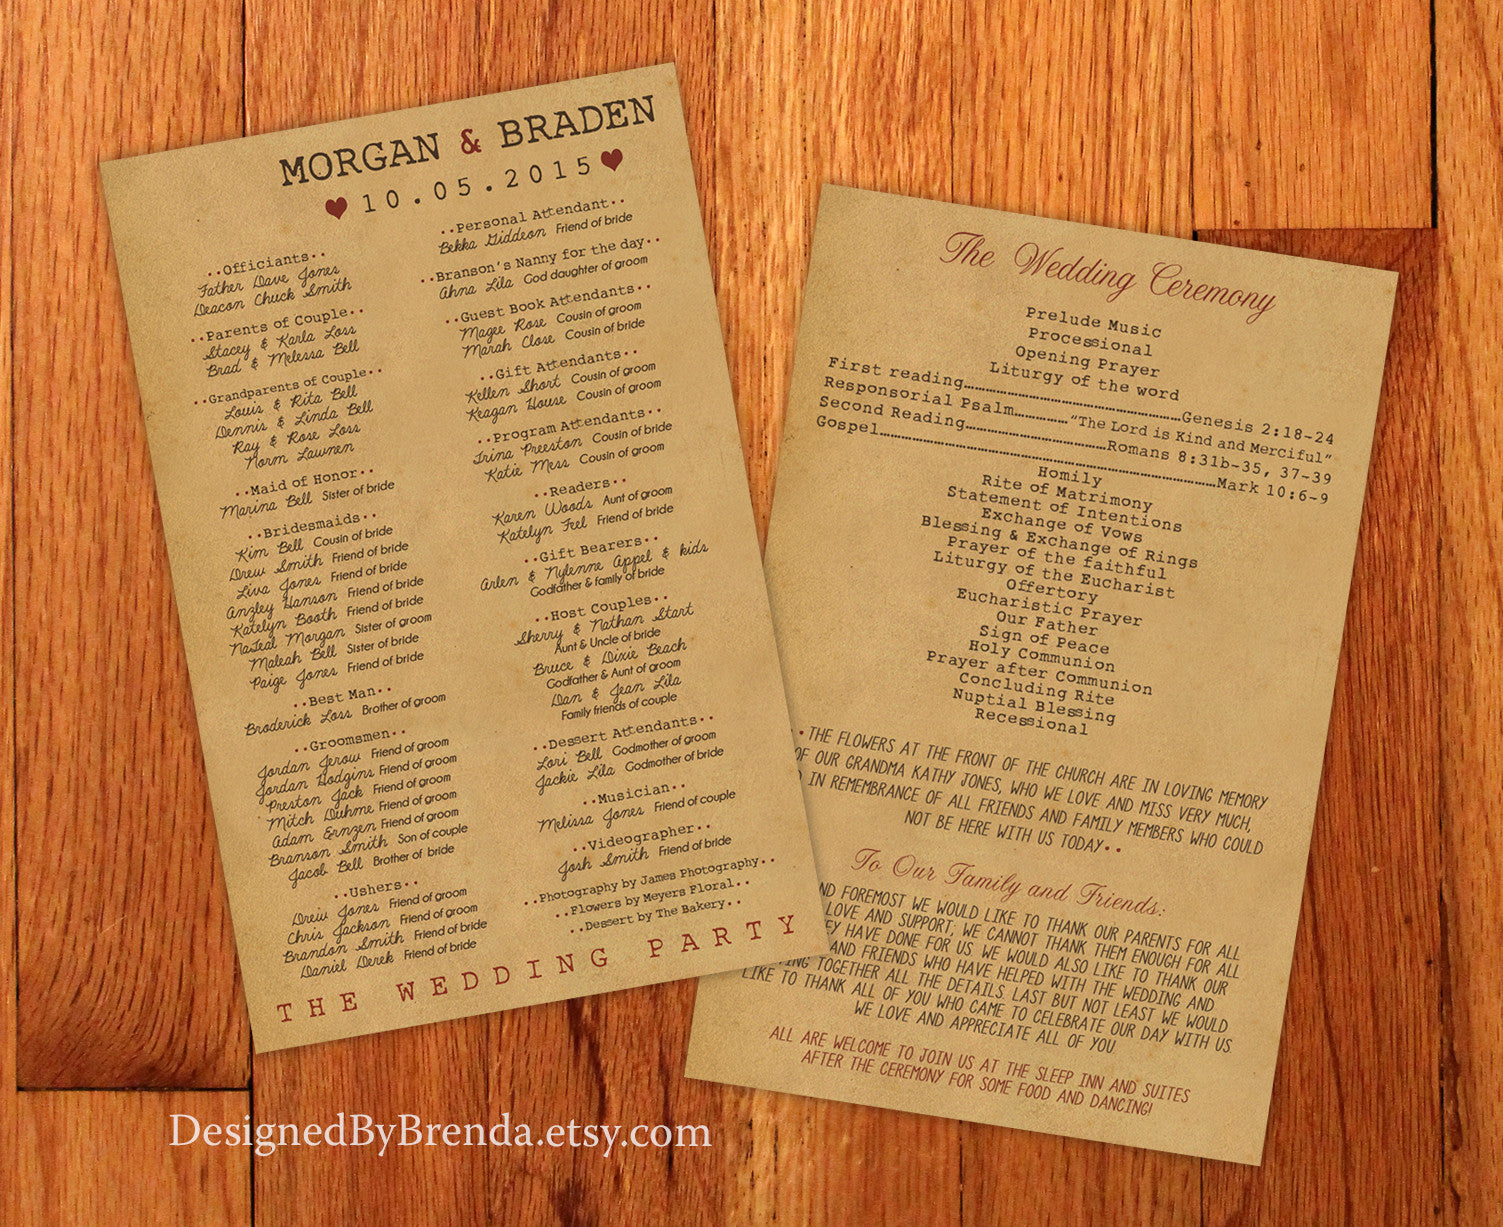 Large Vintage Style Wedding Programs - Double Sided with Rustic Kraft Paper Look